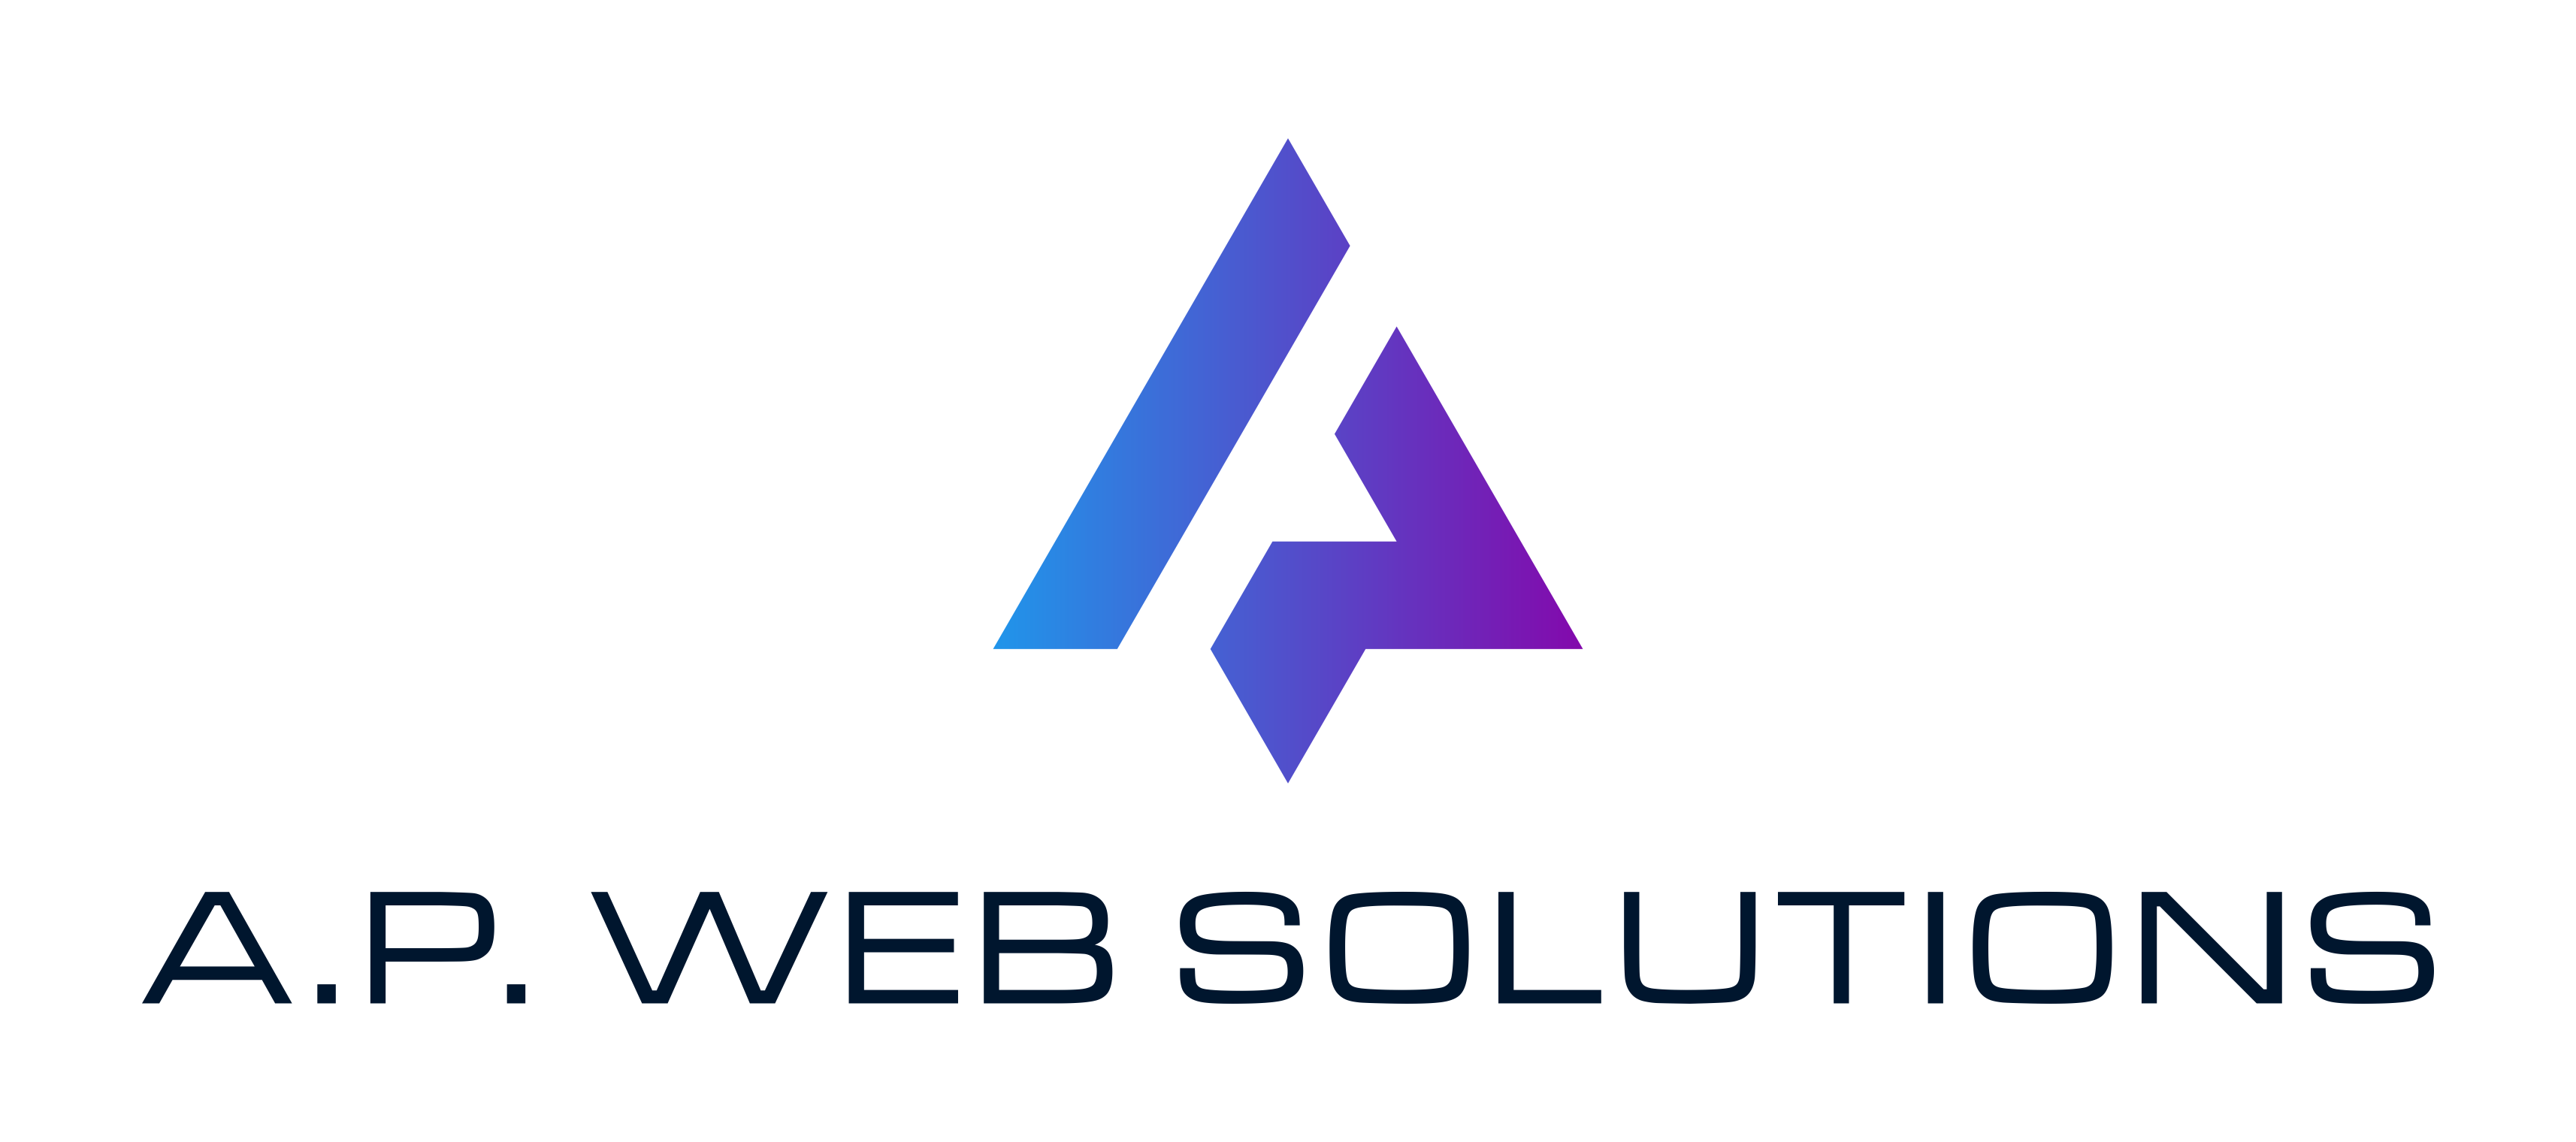 A-P-Web-Solutions-logo-single